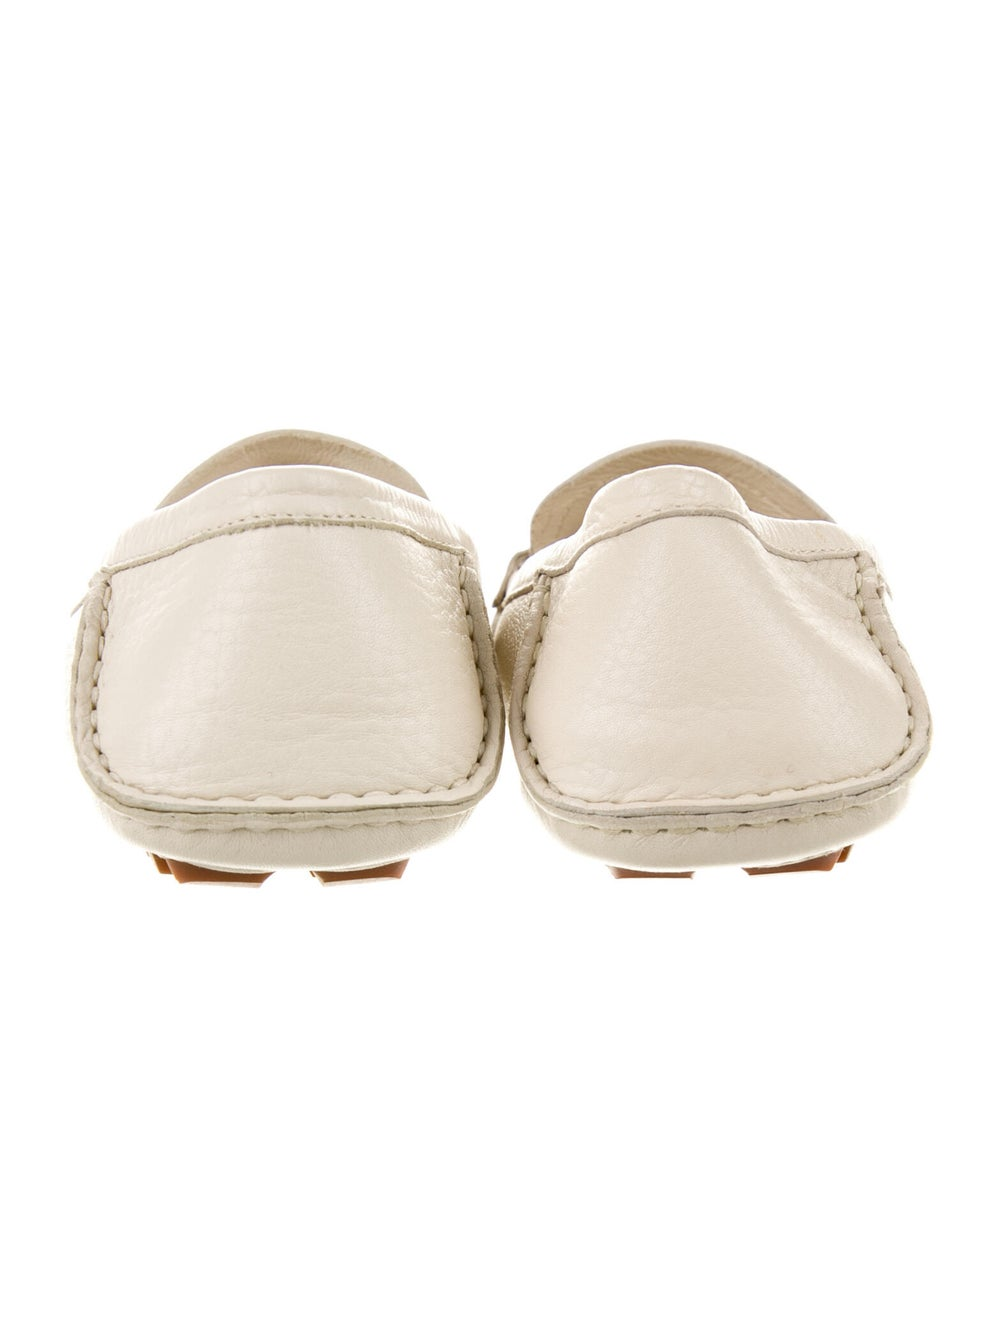 Gucci Horsebit Accent Leather Loafers White - image 4